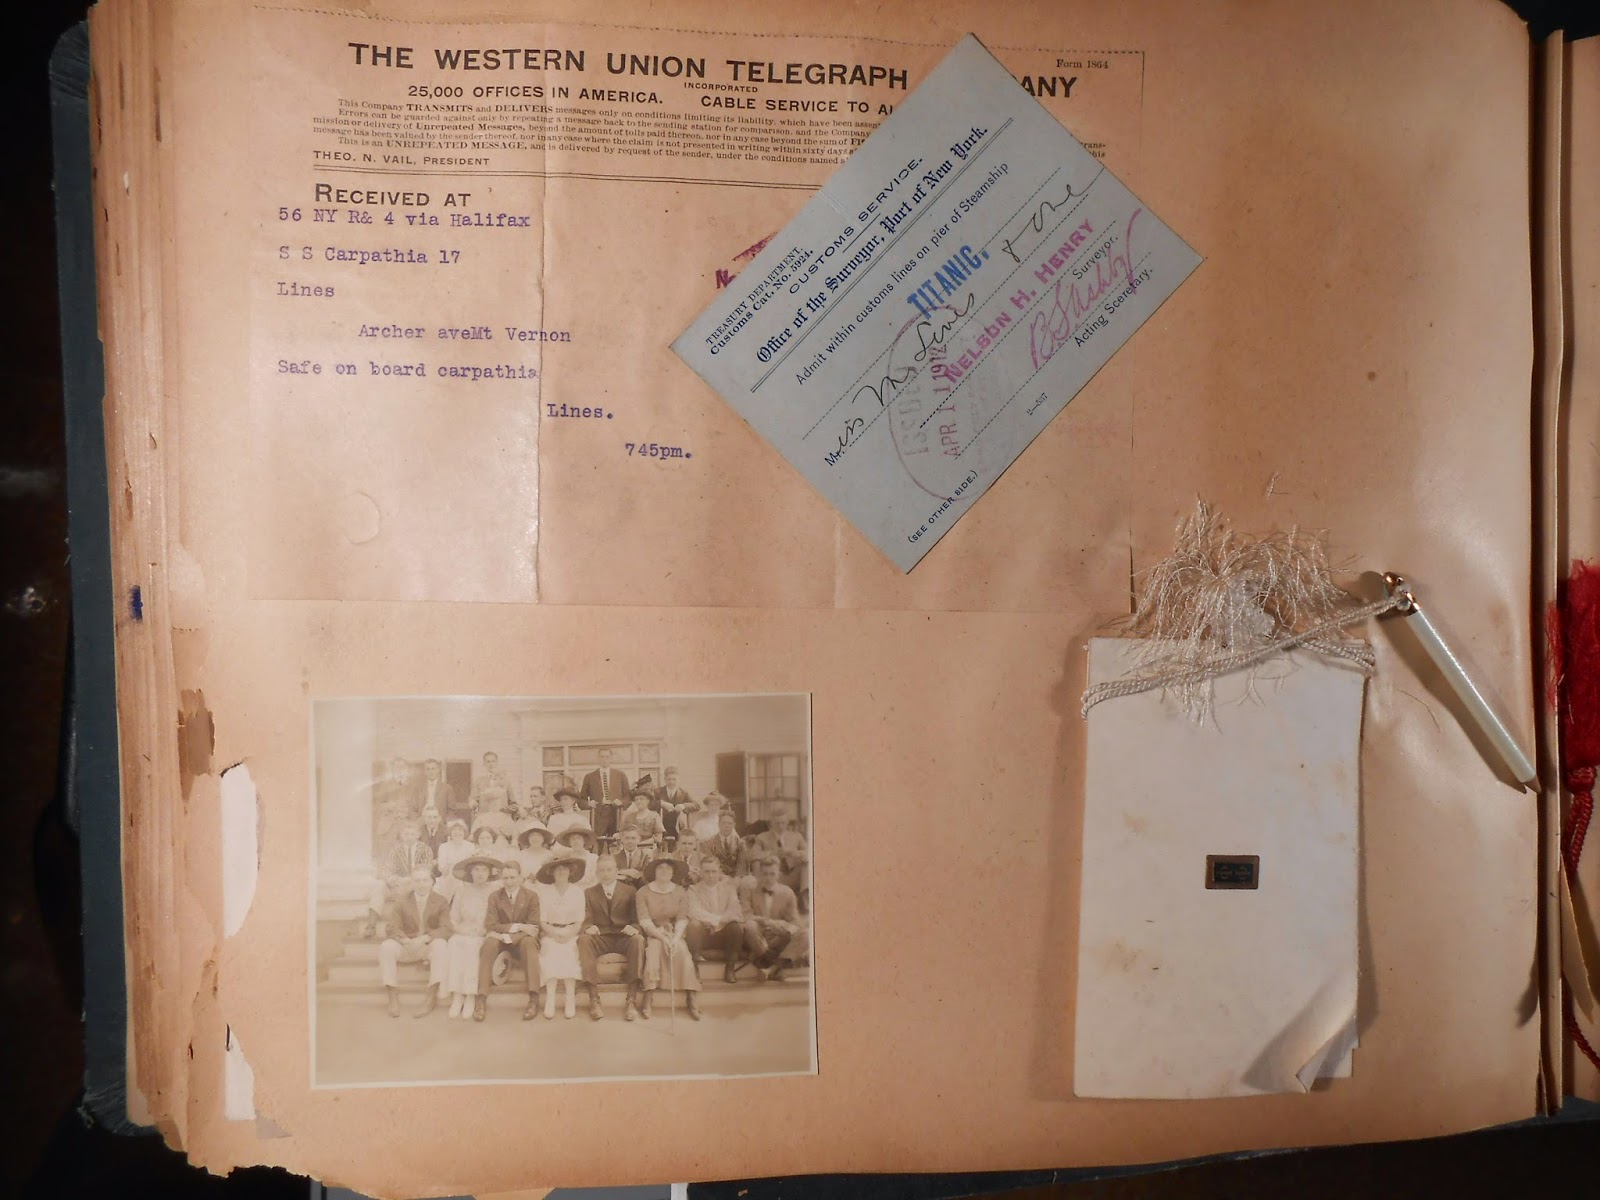 A photograph from inside a scrapbook, including a ticket for the Titanic and a telegram announcing safety.